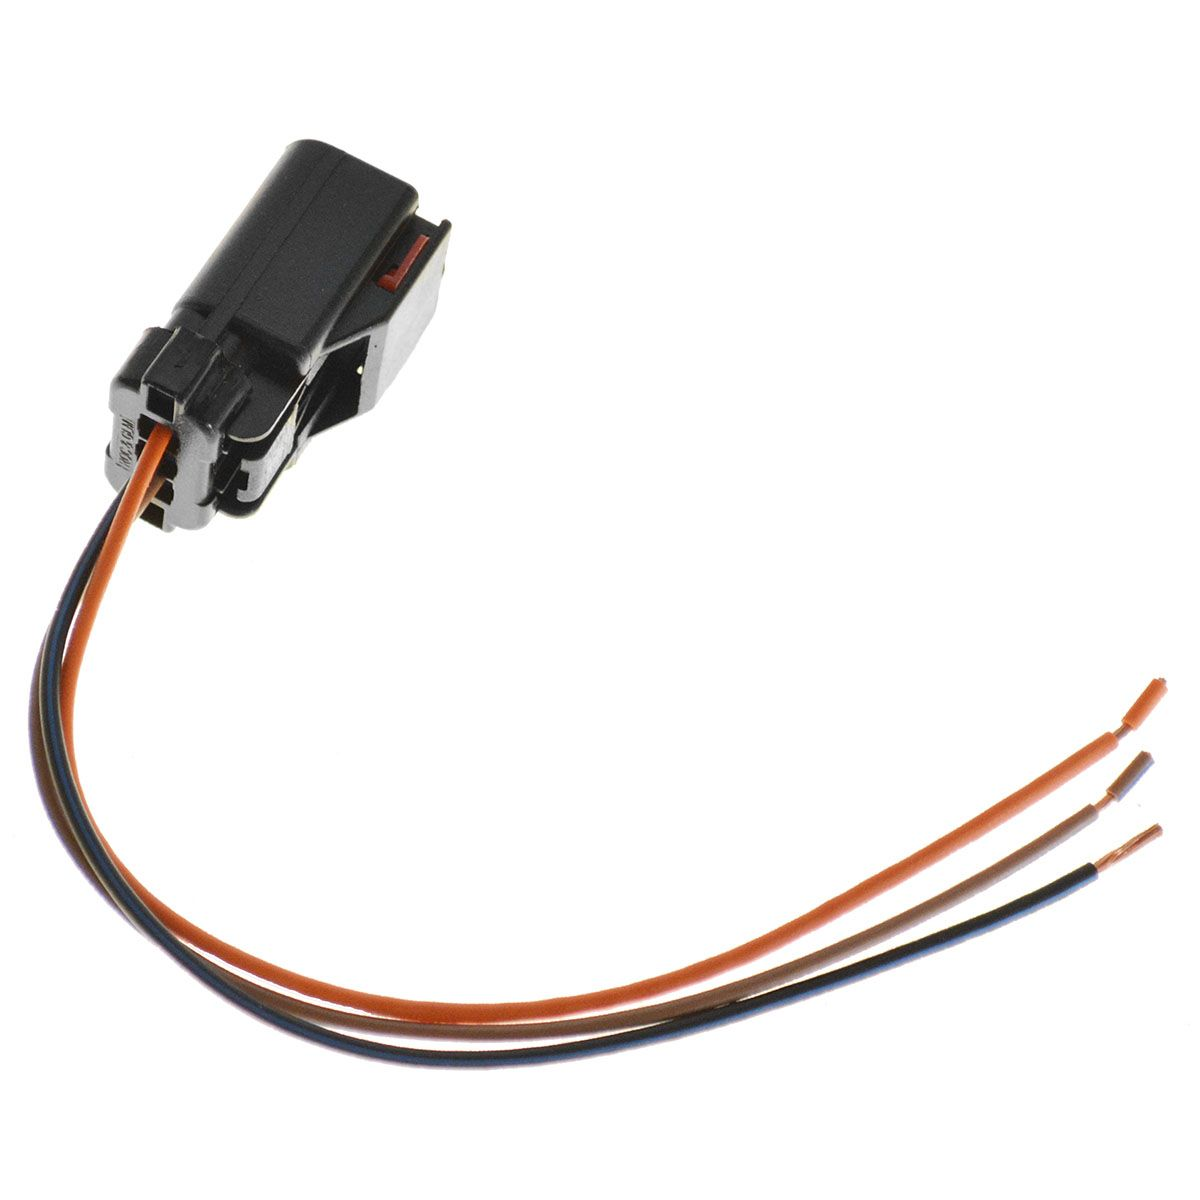 hight resolution of wiring connector pigtail harness 3 terminal pin for chrysler dodge mitsubishi